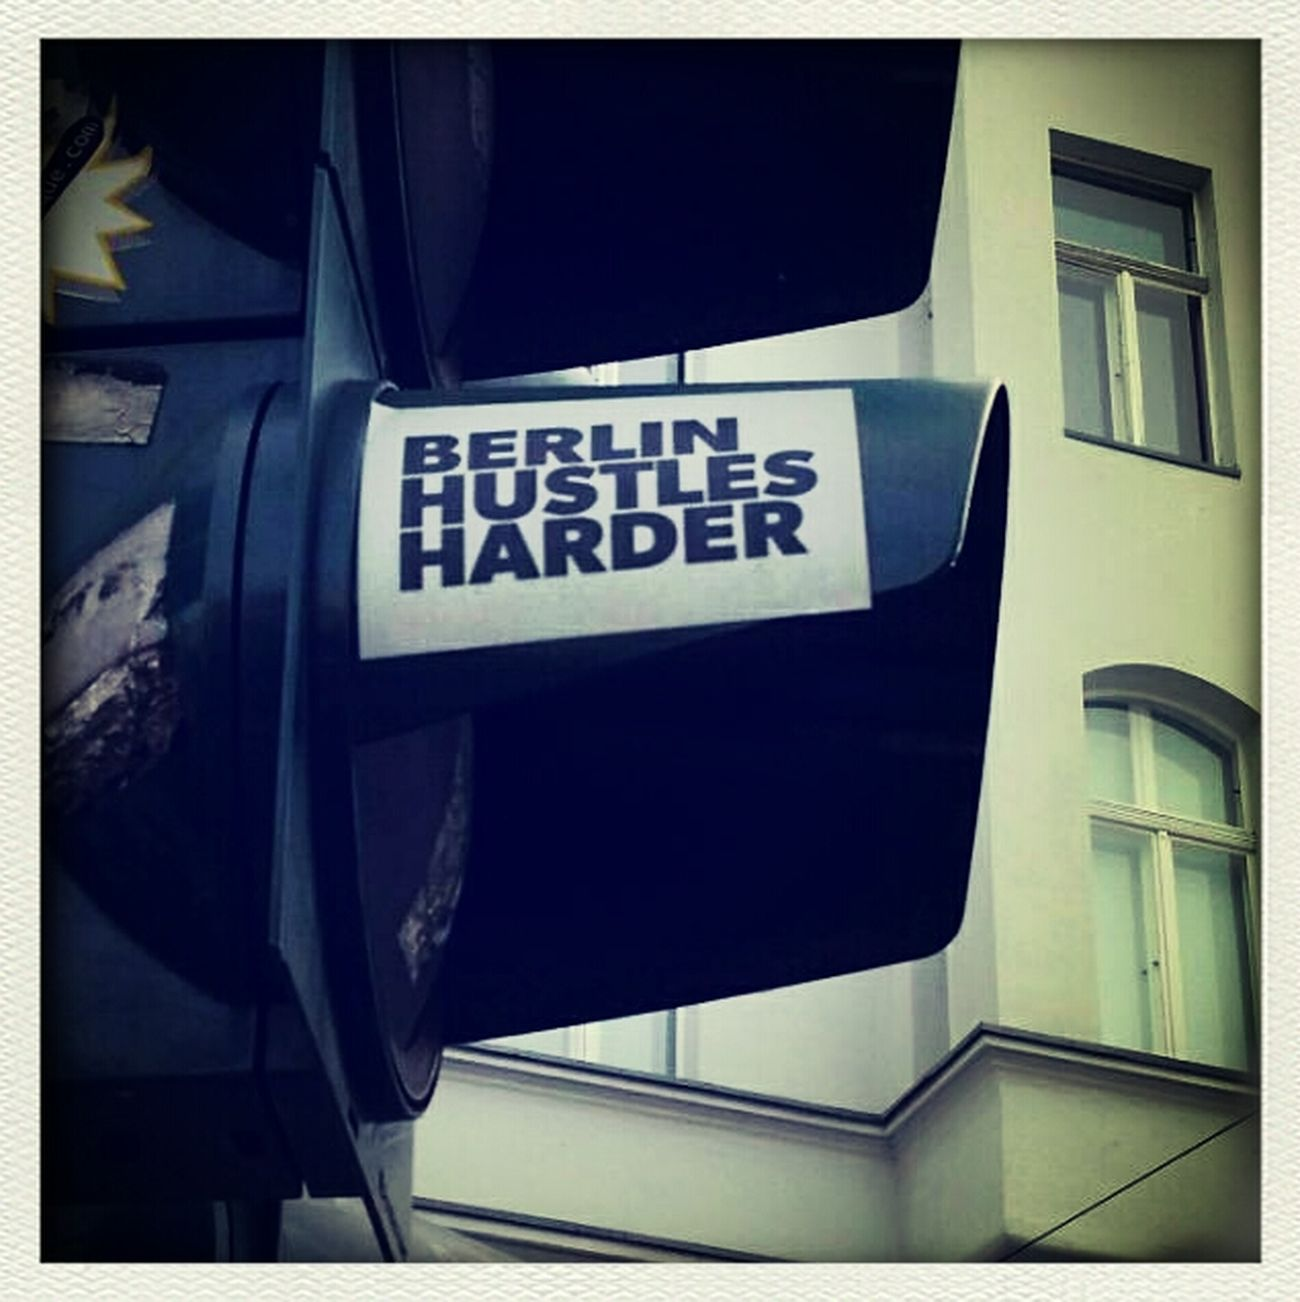 Berlin Hustles Harder... Really? Berlin Startup Bitstars TellM #mitte